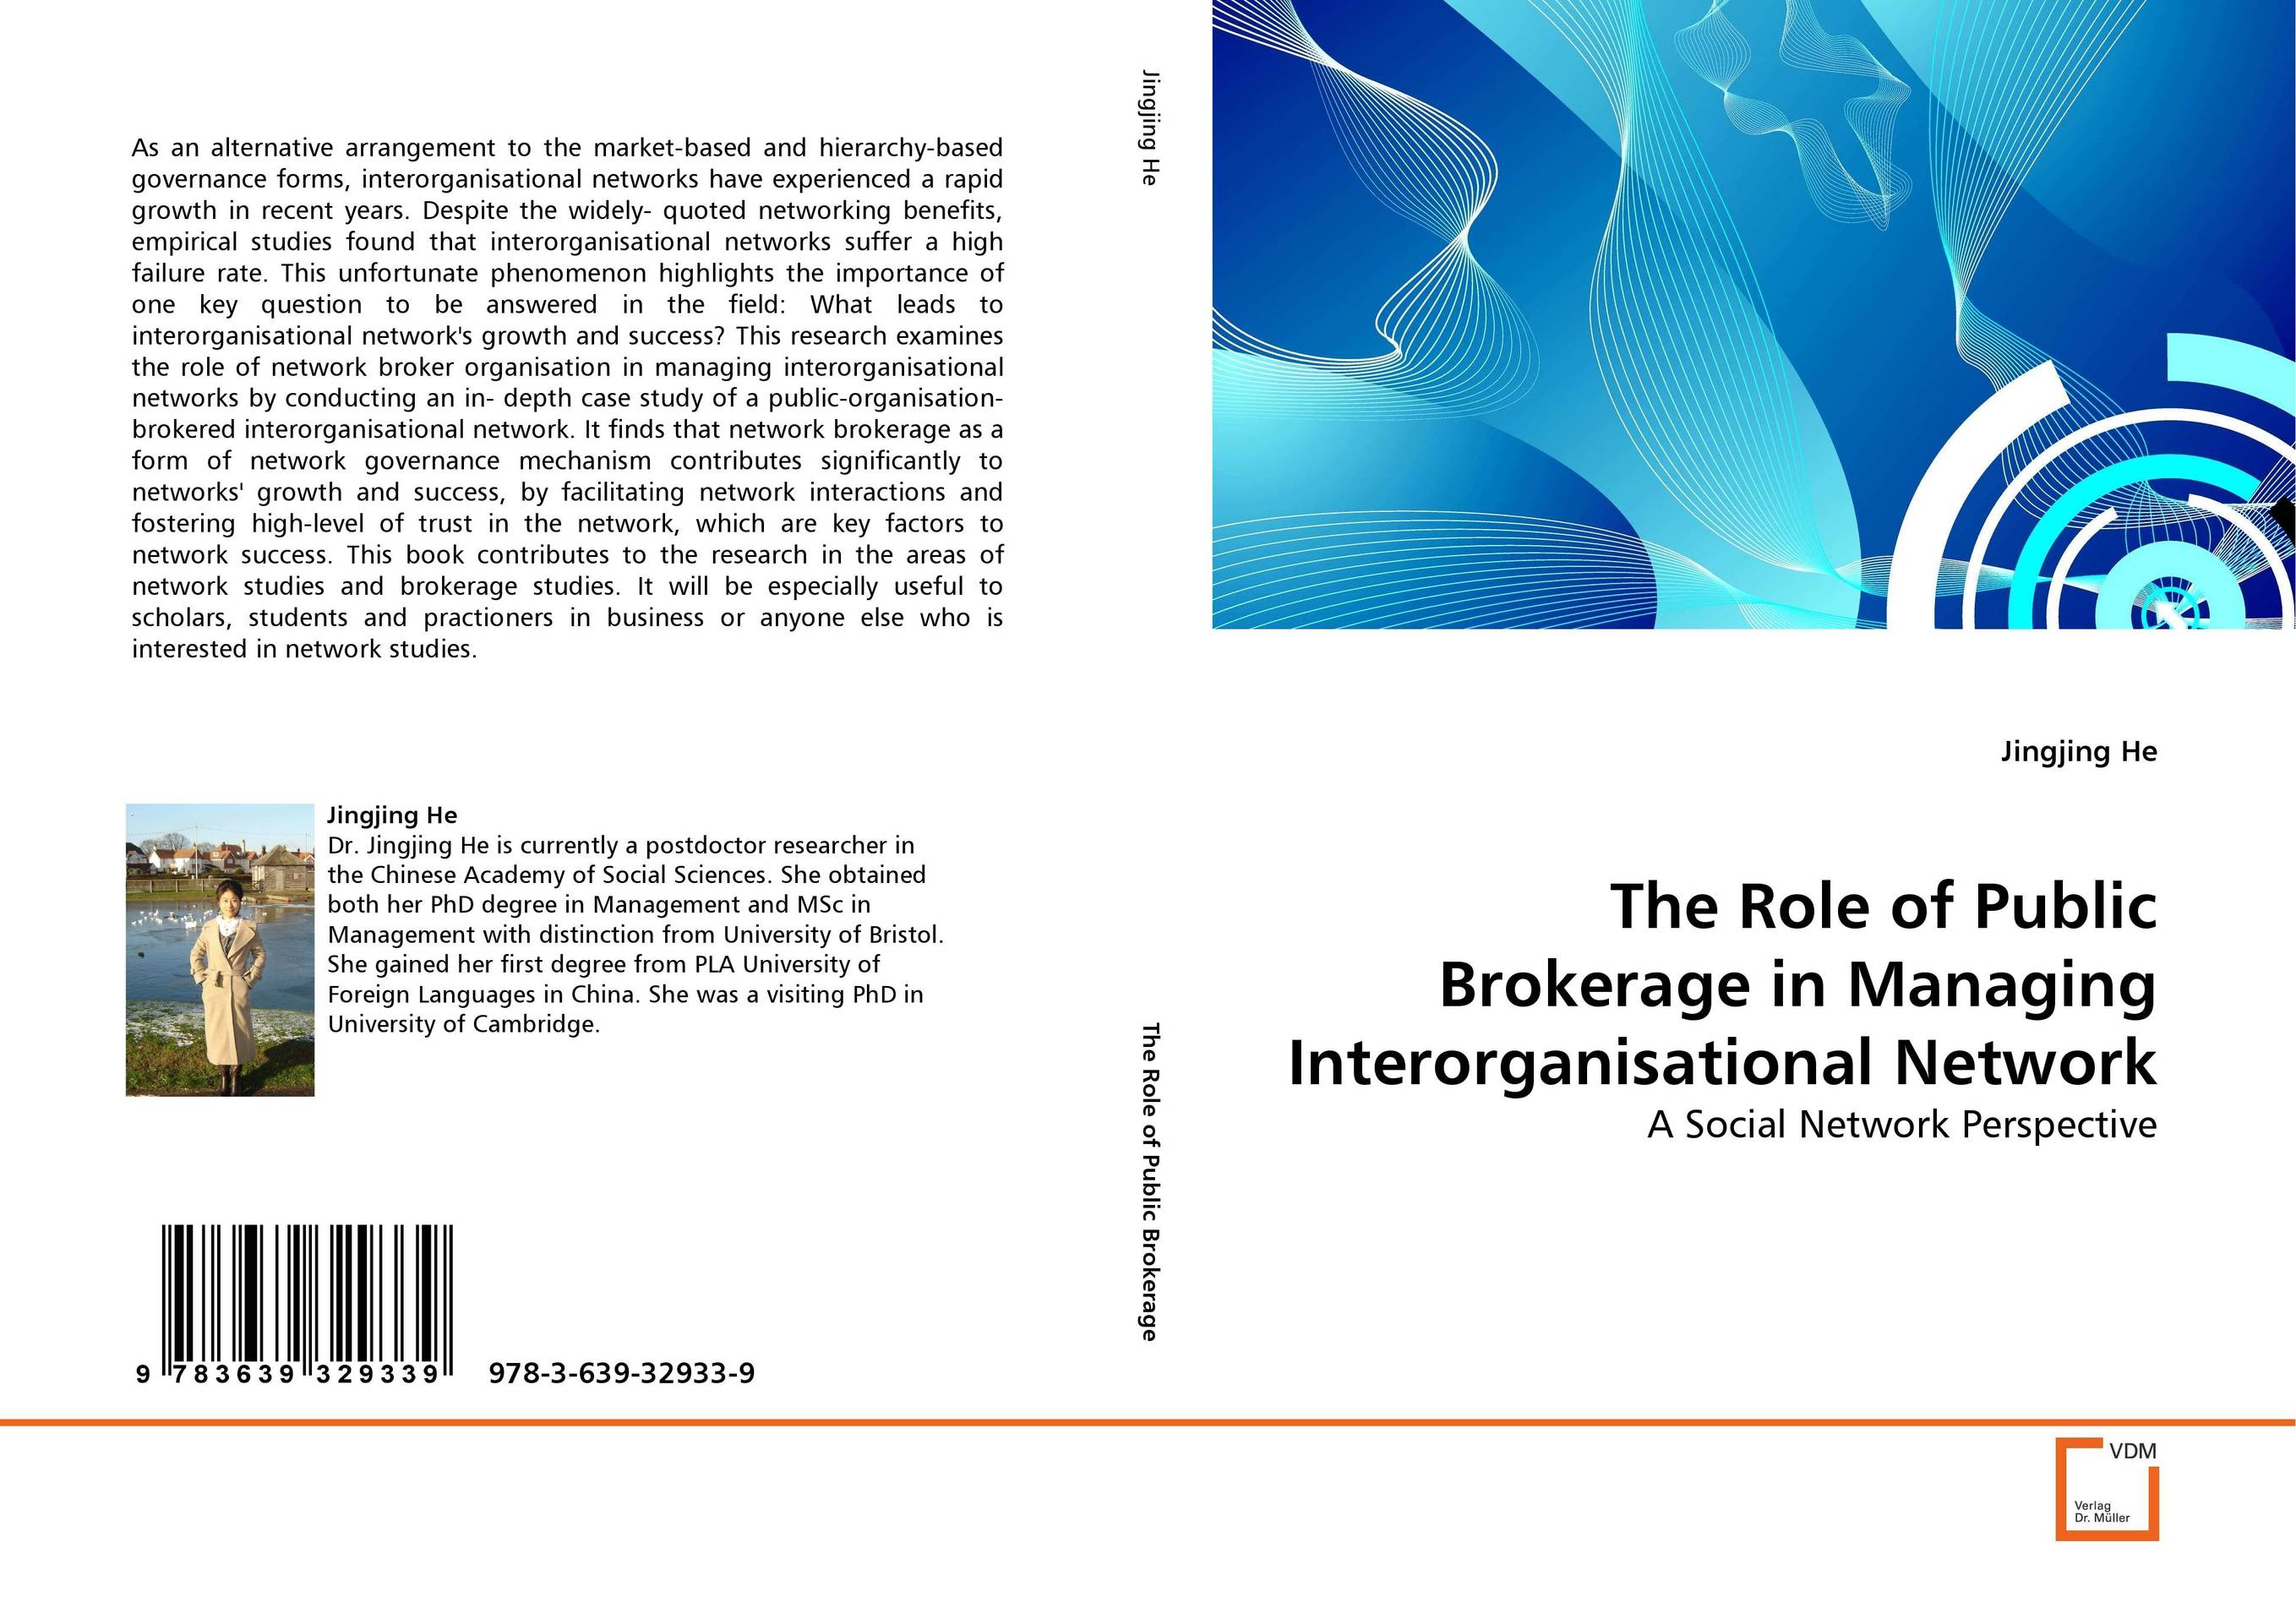 The Role of Public Brokerage in Managing Interorganisational Network managing the store